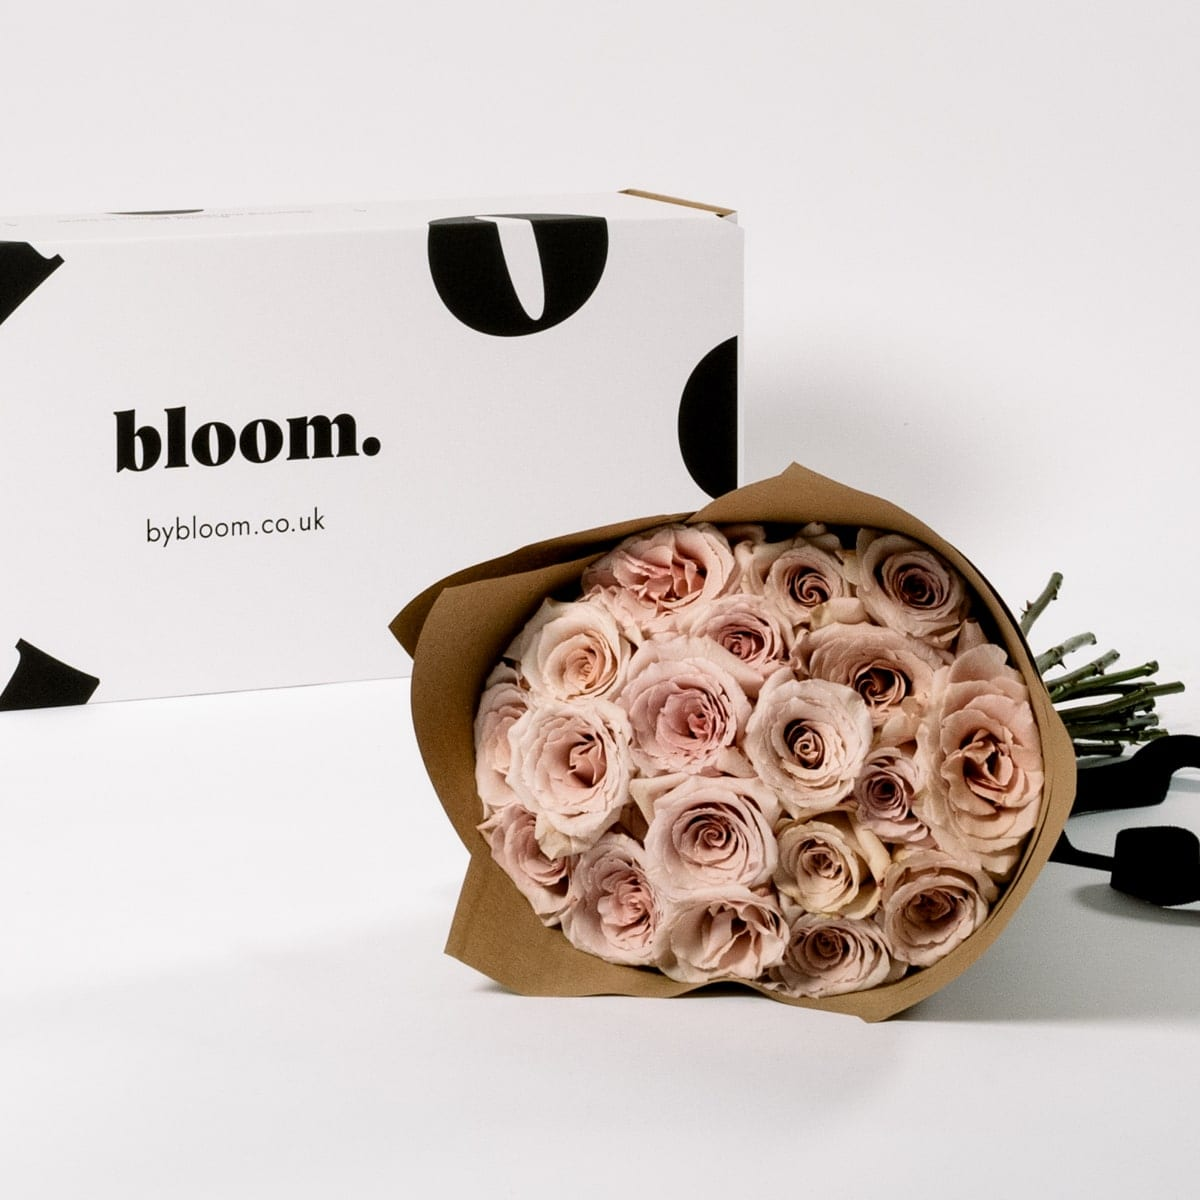 Bloom Flower Delivery | Old Lace Roses